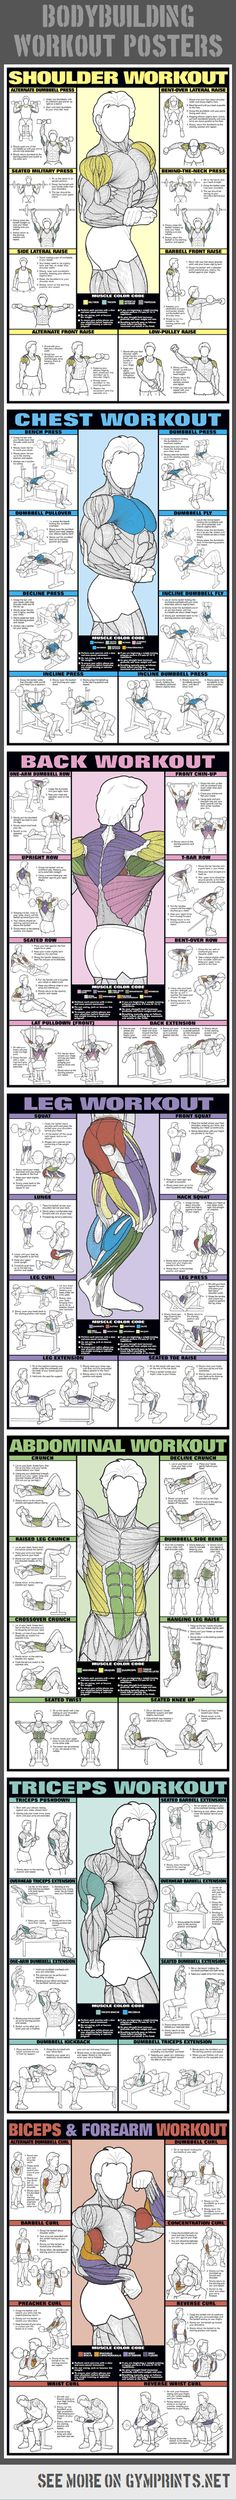 This in-depth shoulder workout shows you how to do these exercises and what they work! http://www.mountainsidefitness.com/